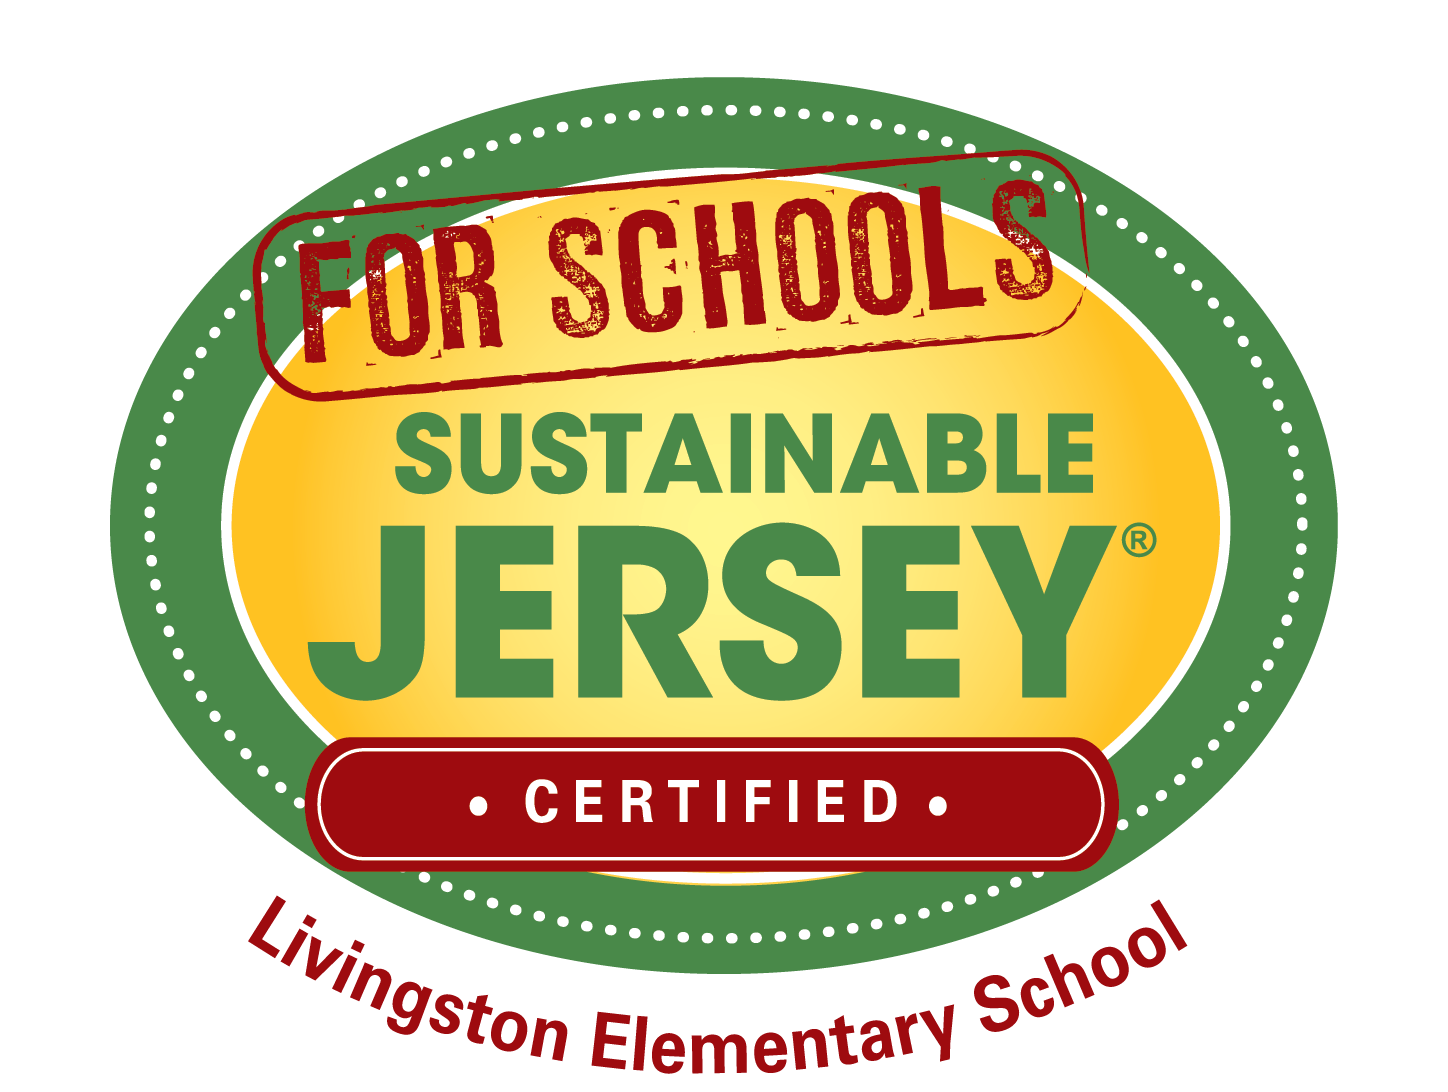 2018 - Sustainable Jersey for Schools (LV)